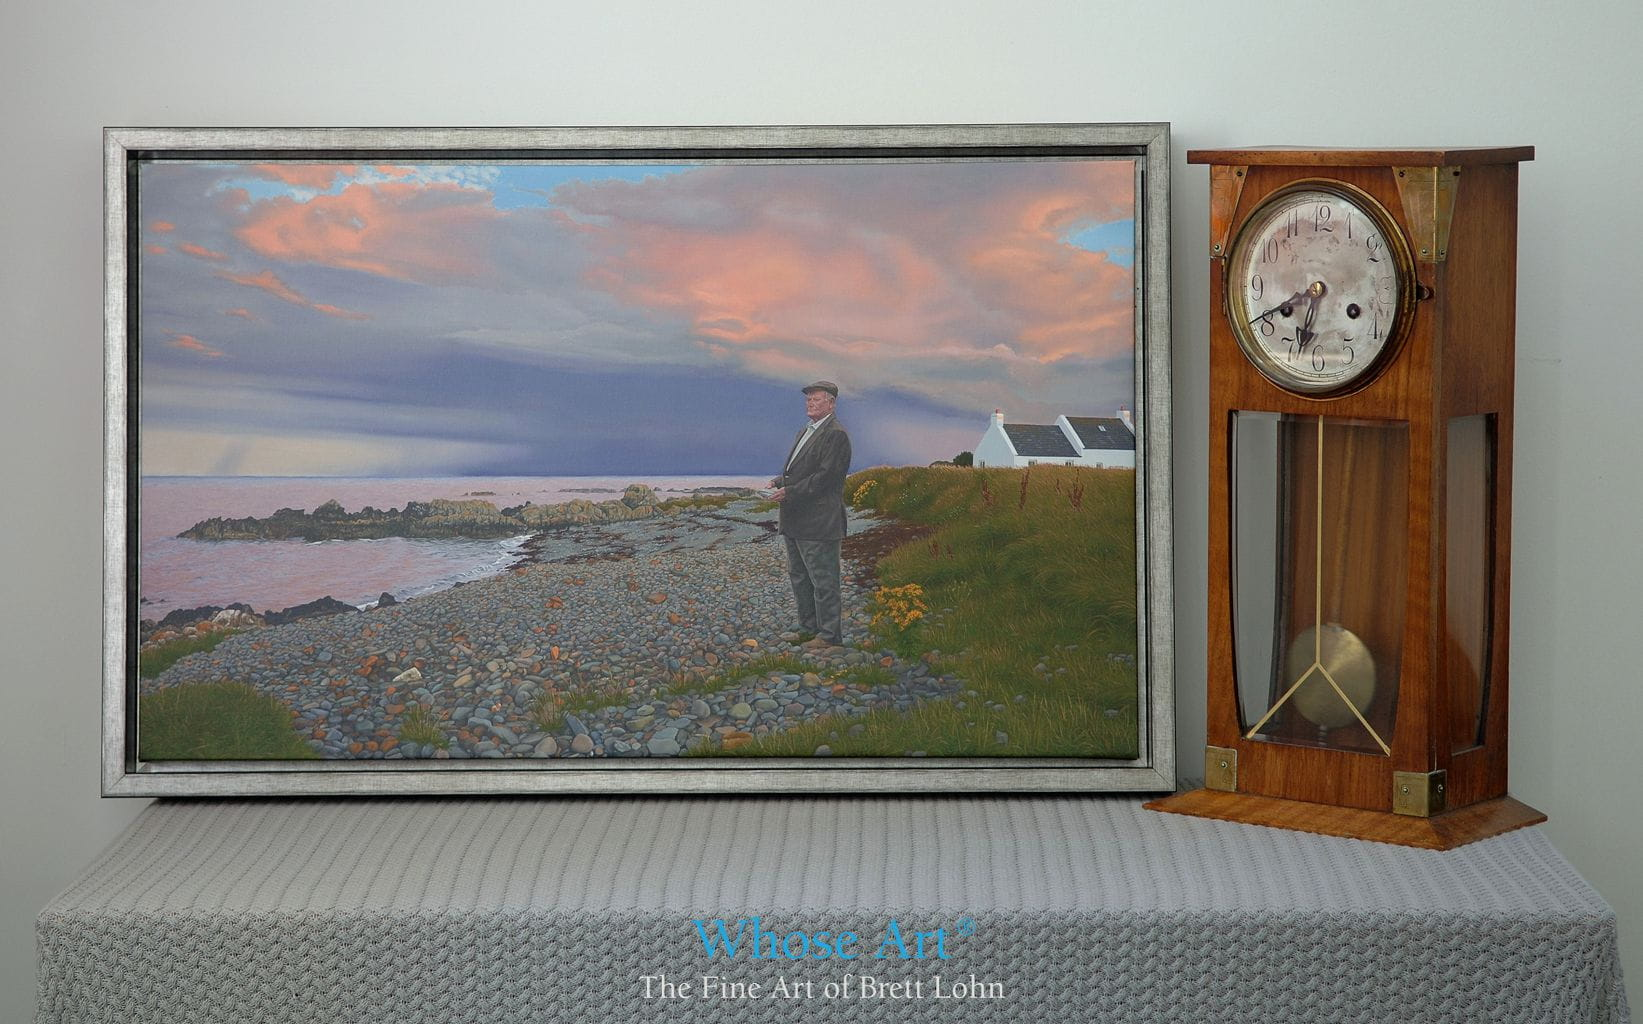 Framed canvas art picture in a hotel room with tasteful interior decoration of a clock and hotel table. This art for hotels is an oil painting of a beach.